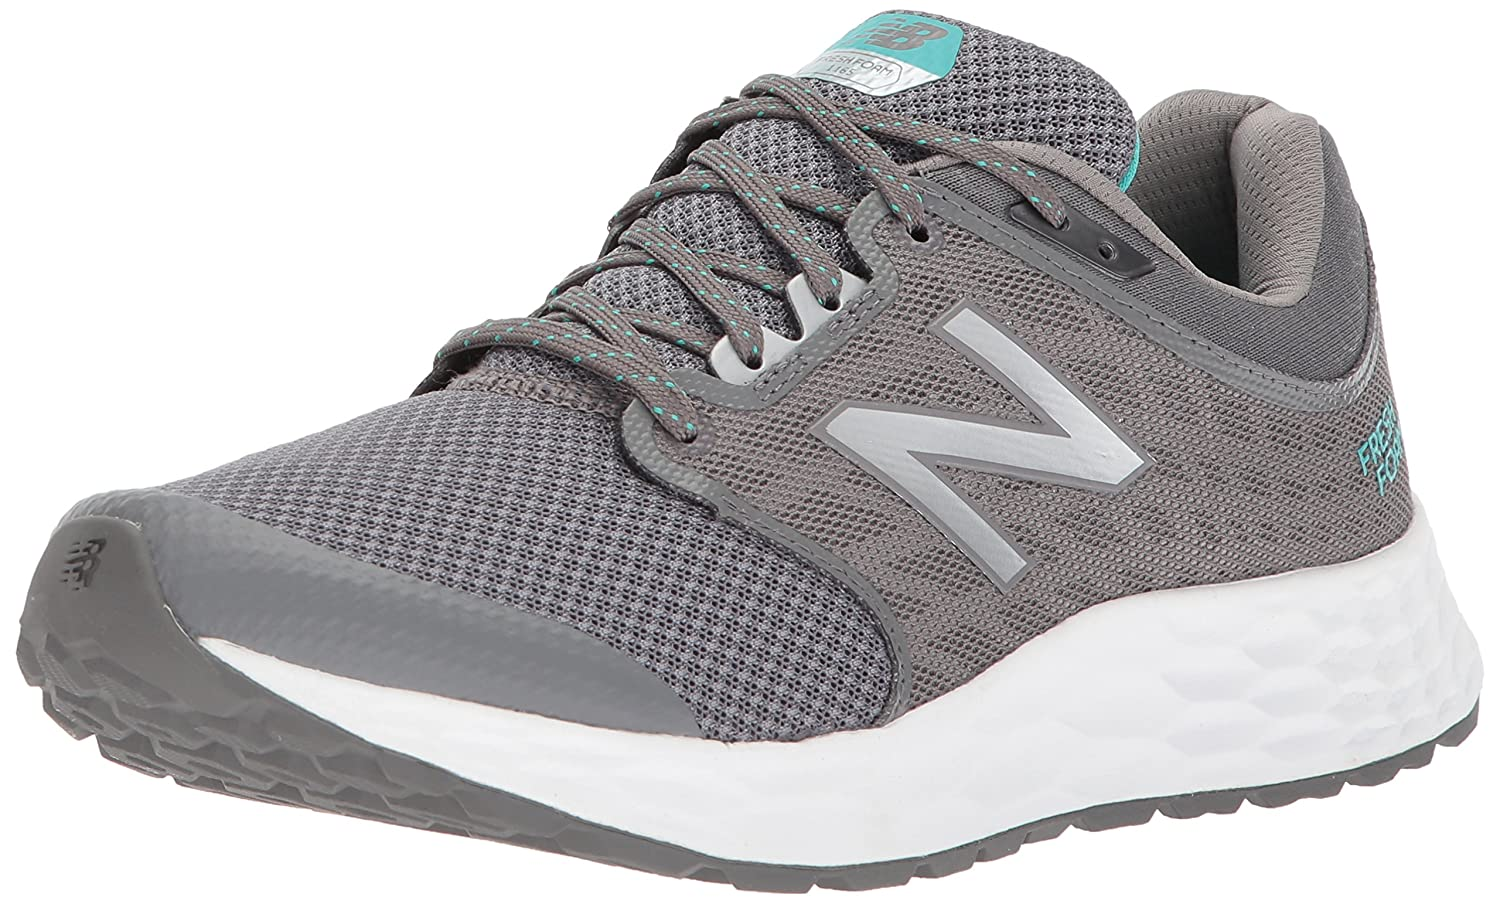 New Balance Women's 1165v1 Fresh Foam Walking Shoe B06XXDHQYC 10 2E US|Grey